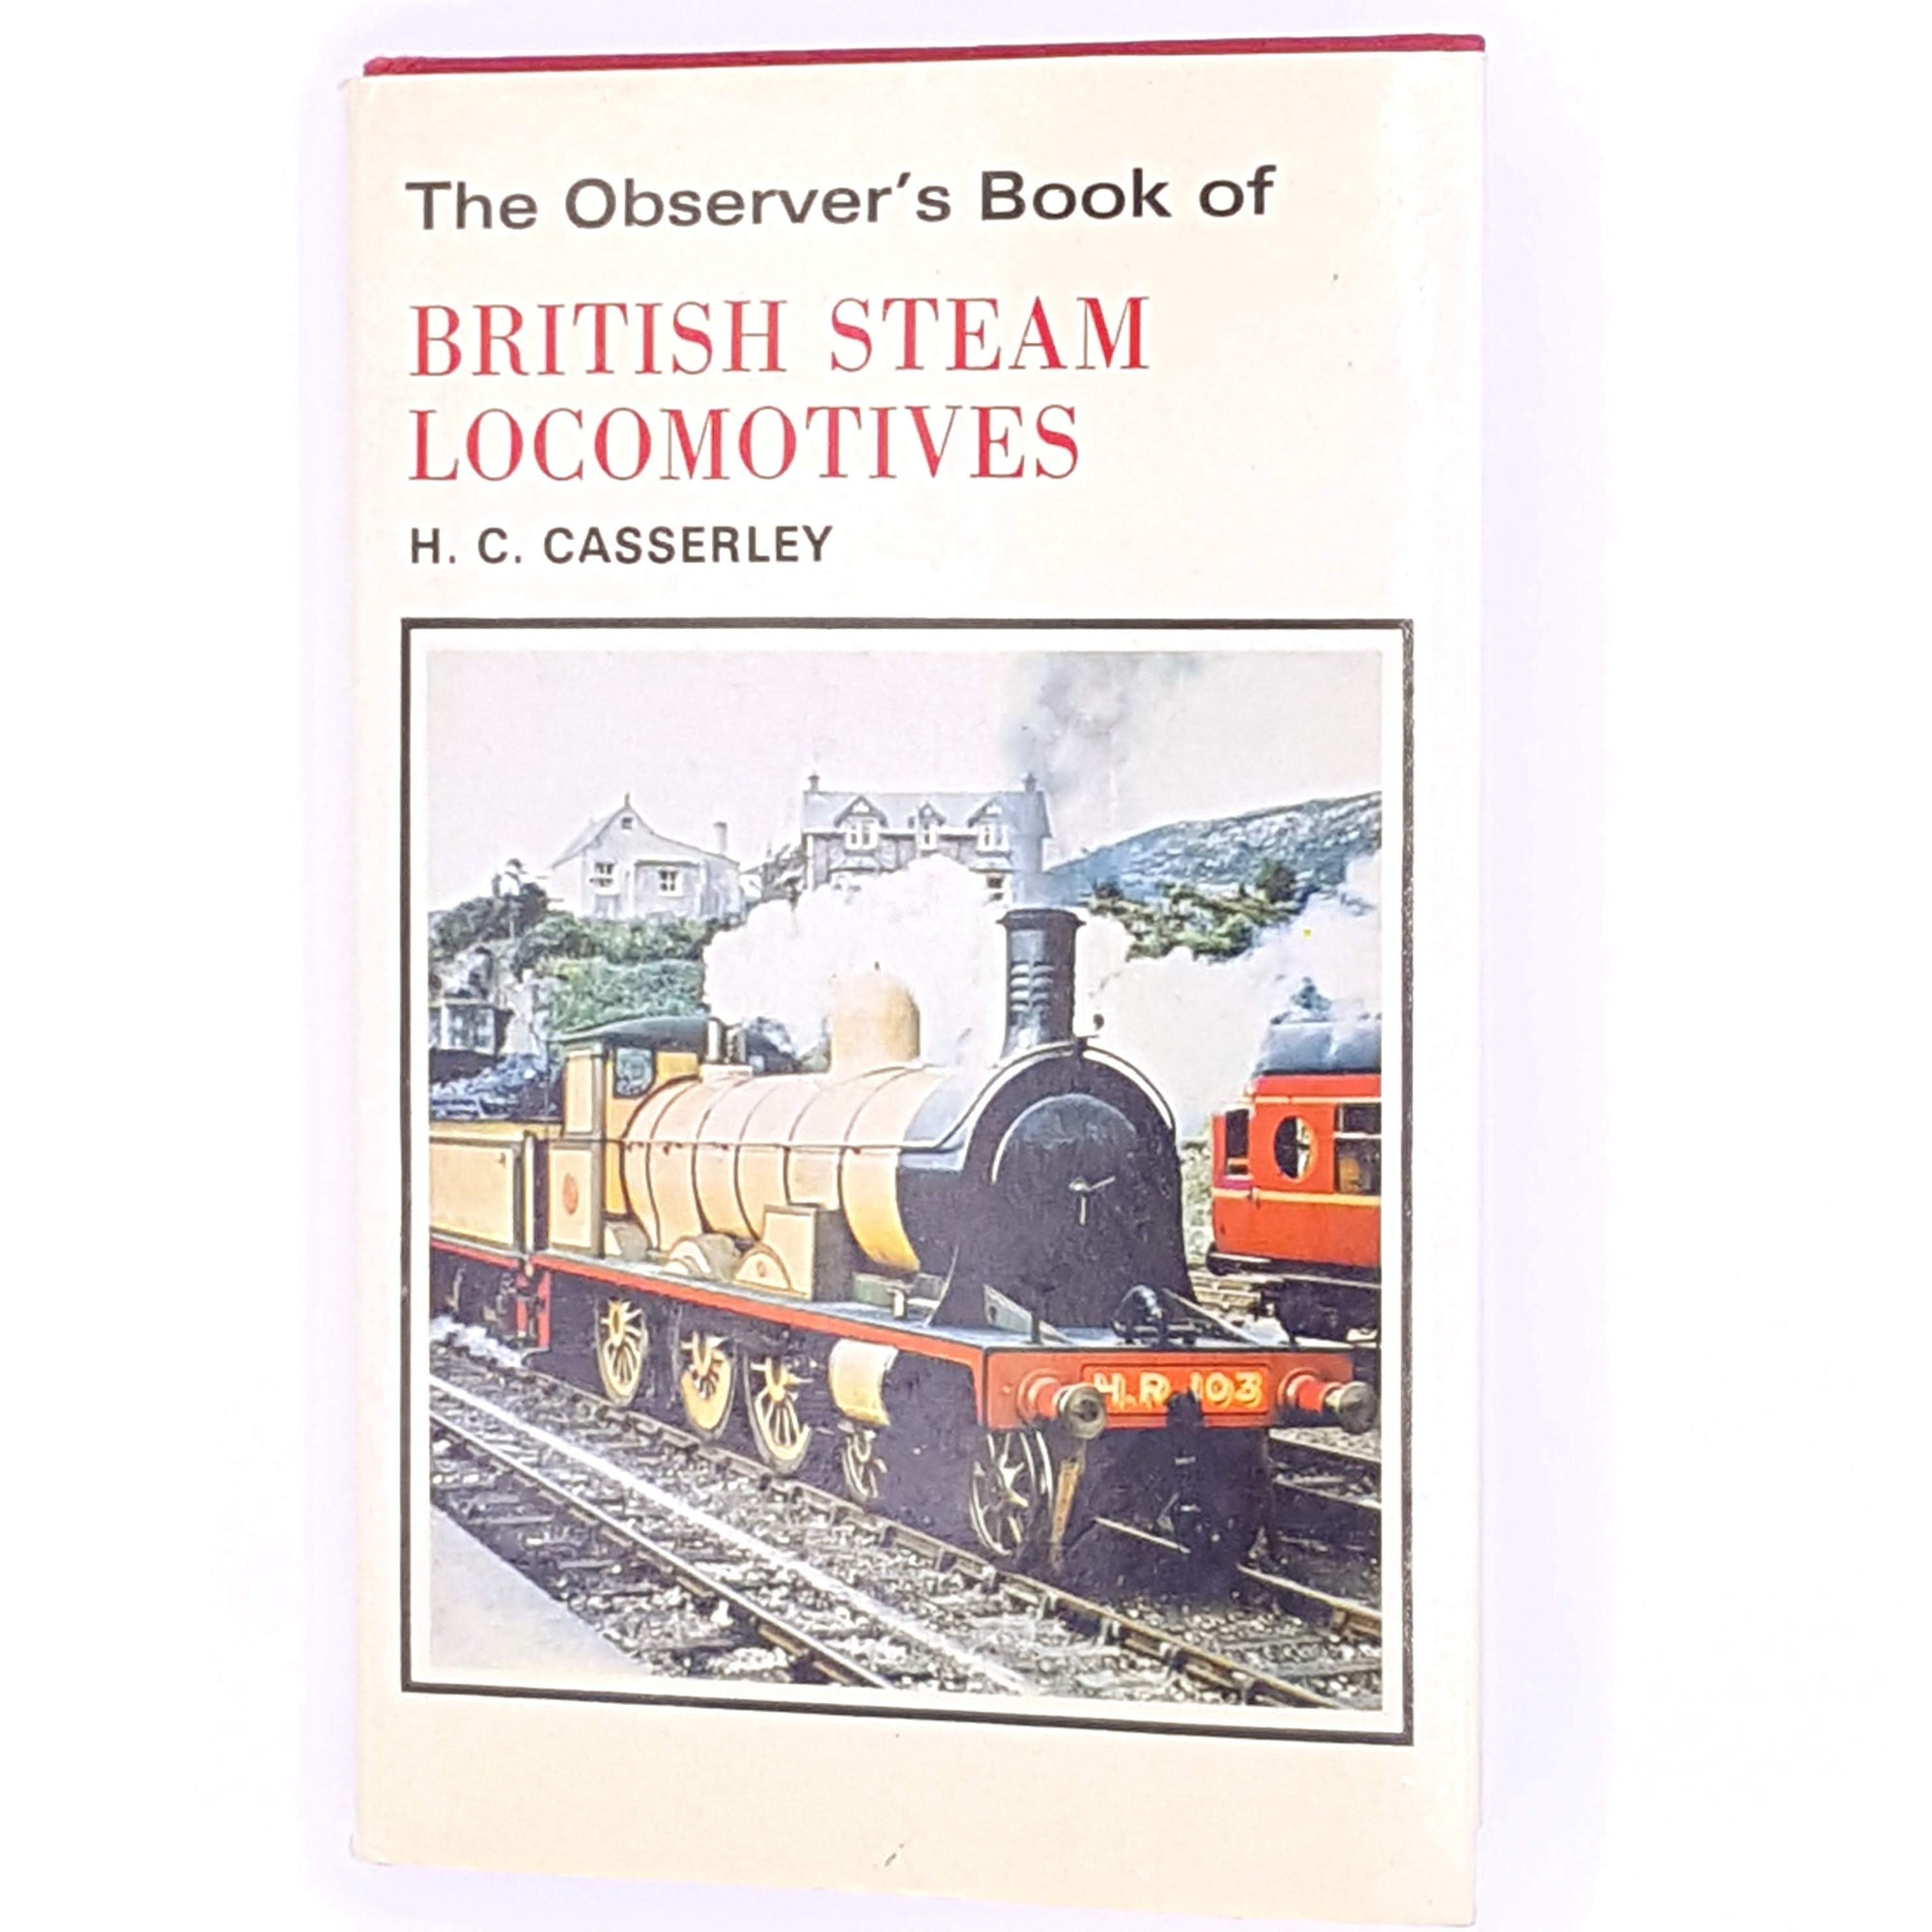 classic-books-old-country-house-library-observer-H-C-Casserley-thrift-vintage-trains-decorative-pocket-antique-british-steam-locomotives-railway-patterned-guide-